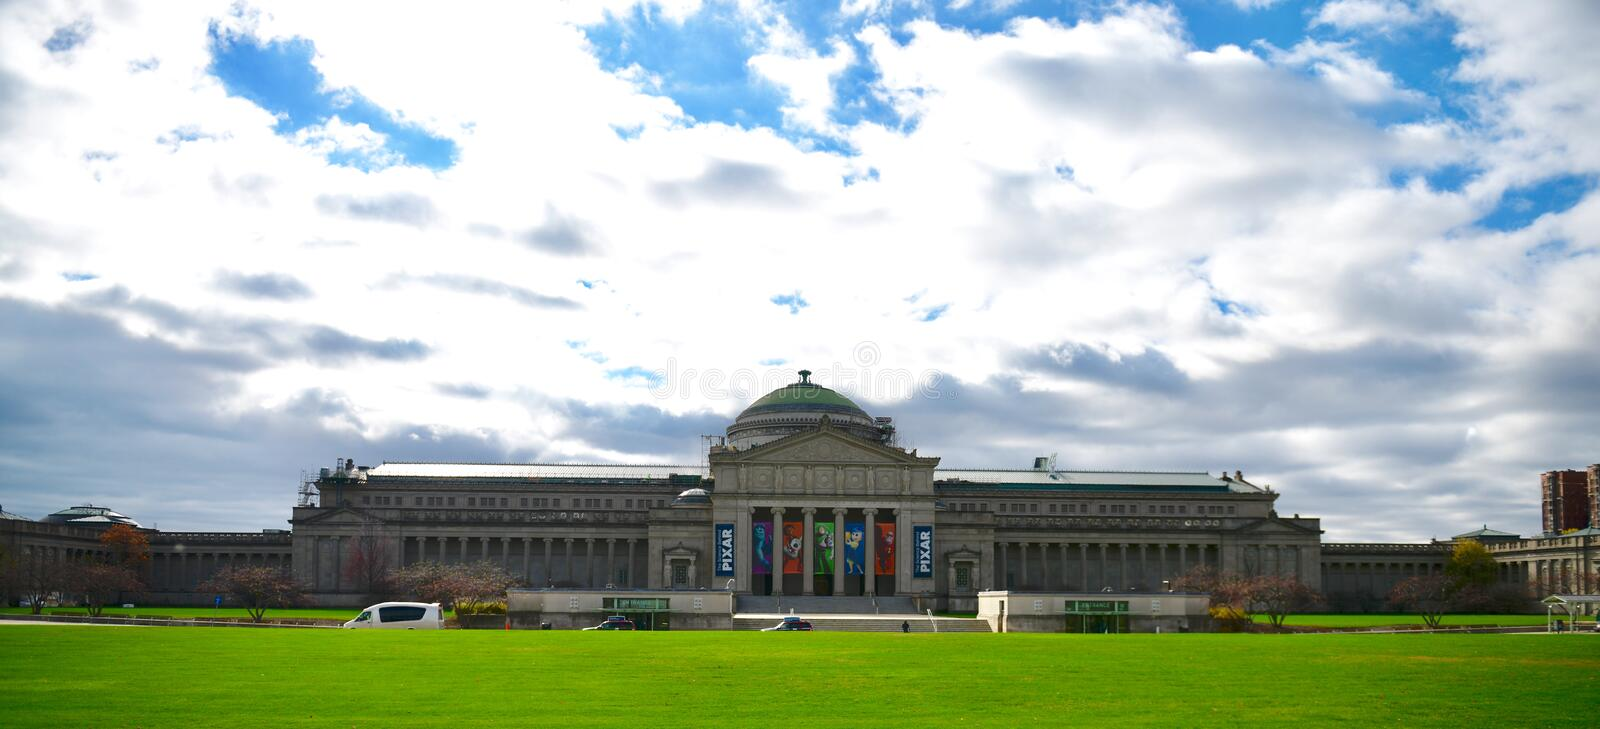 North View of Science and Industry Museum. This is a Fall picture of the North side of the historic Chicago Museum of Science and Industry in Jackson Park stock image